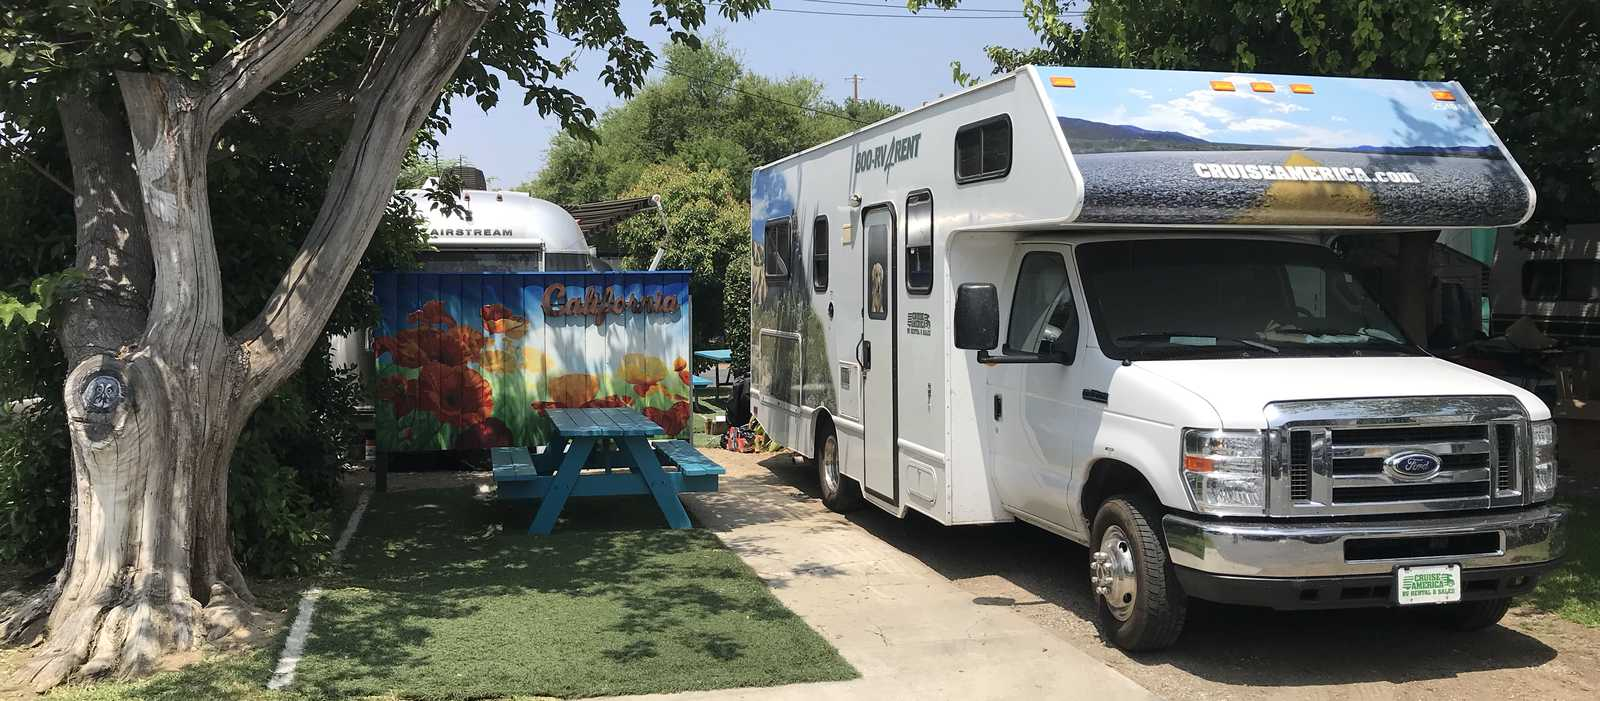 Hollywood RV Campground